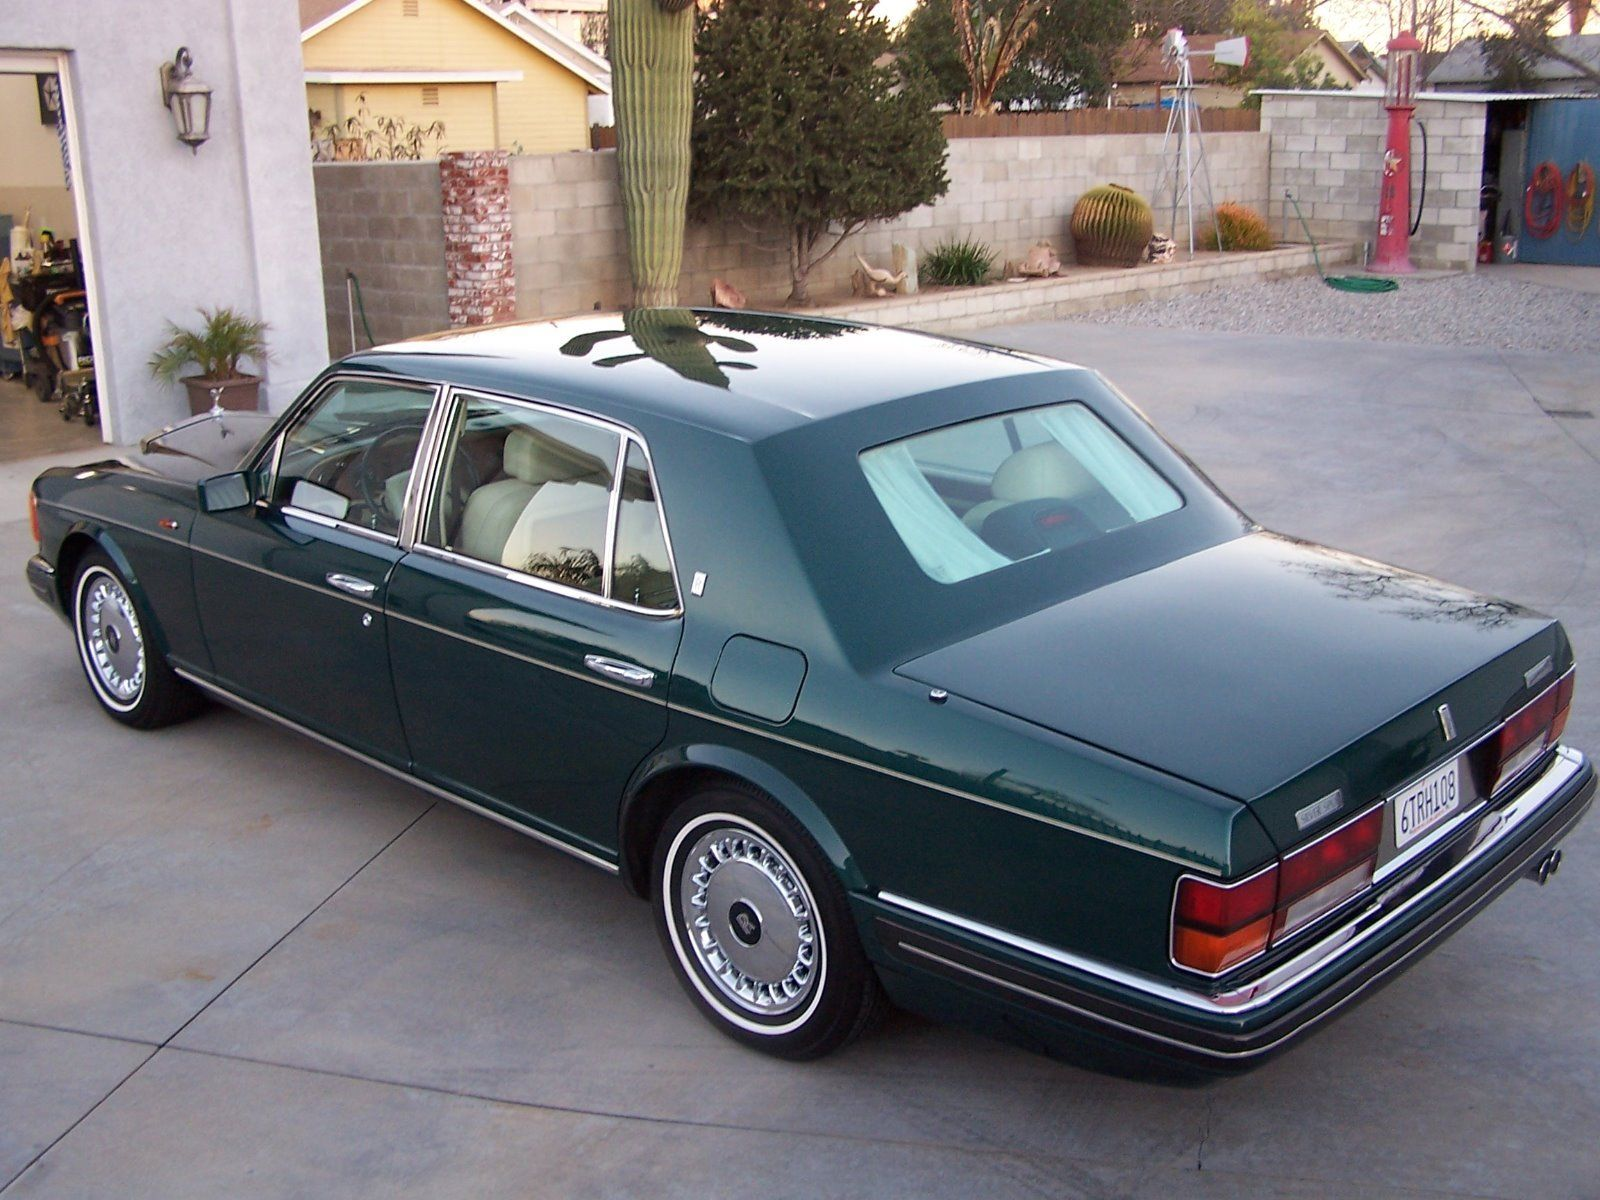 1997 rolls royce lwb silver spur mulliner park ward fort lauderdale. Black Bedroom Furniture Sets. Home Design Ideas